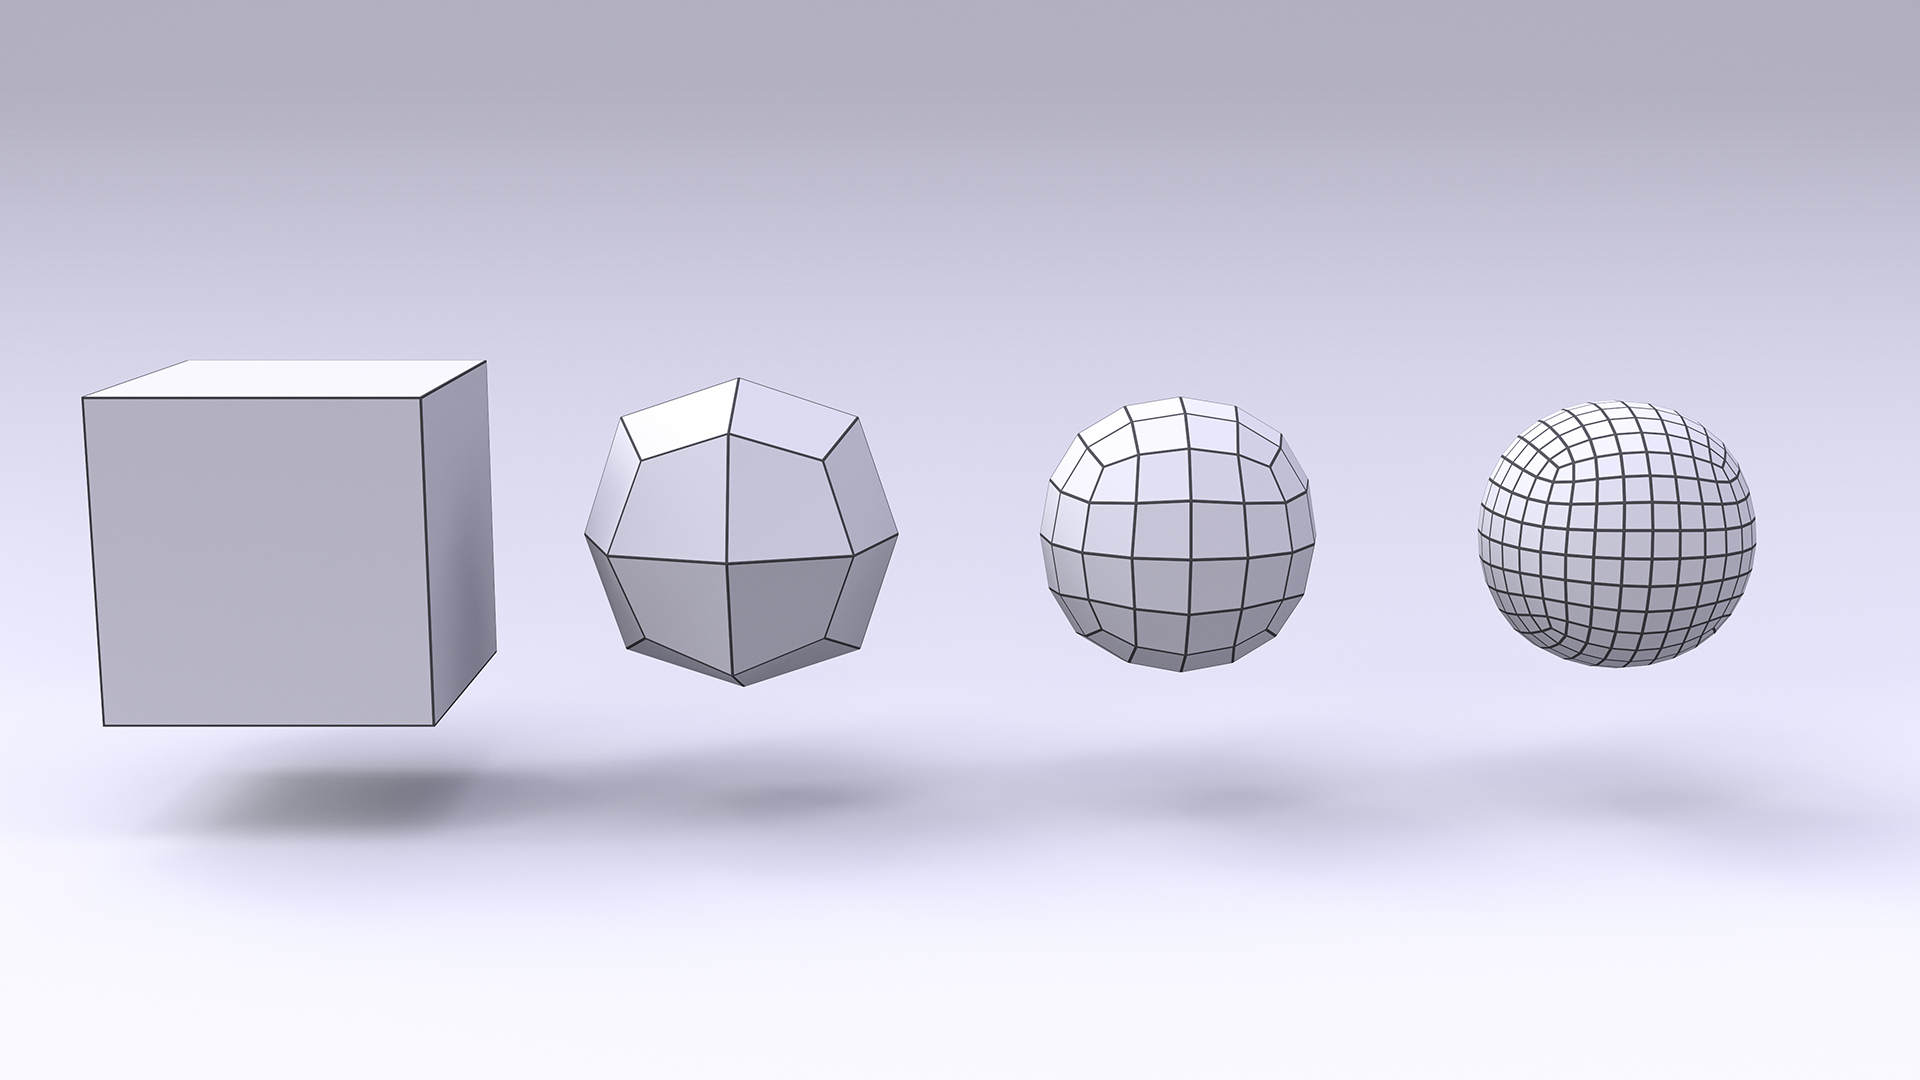 Figure 2: A cube with 0, 1, 2, and 3 subdivision levels, going from left to right.